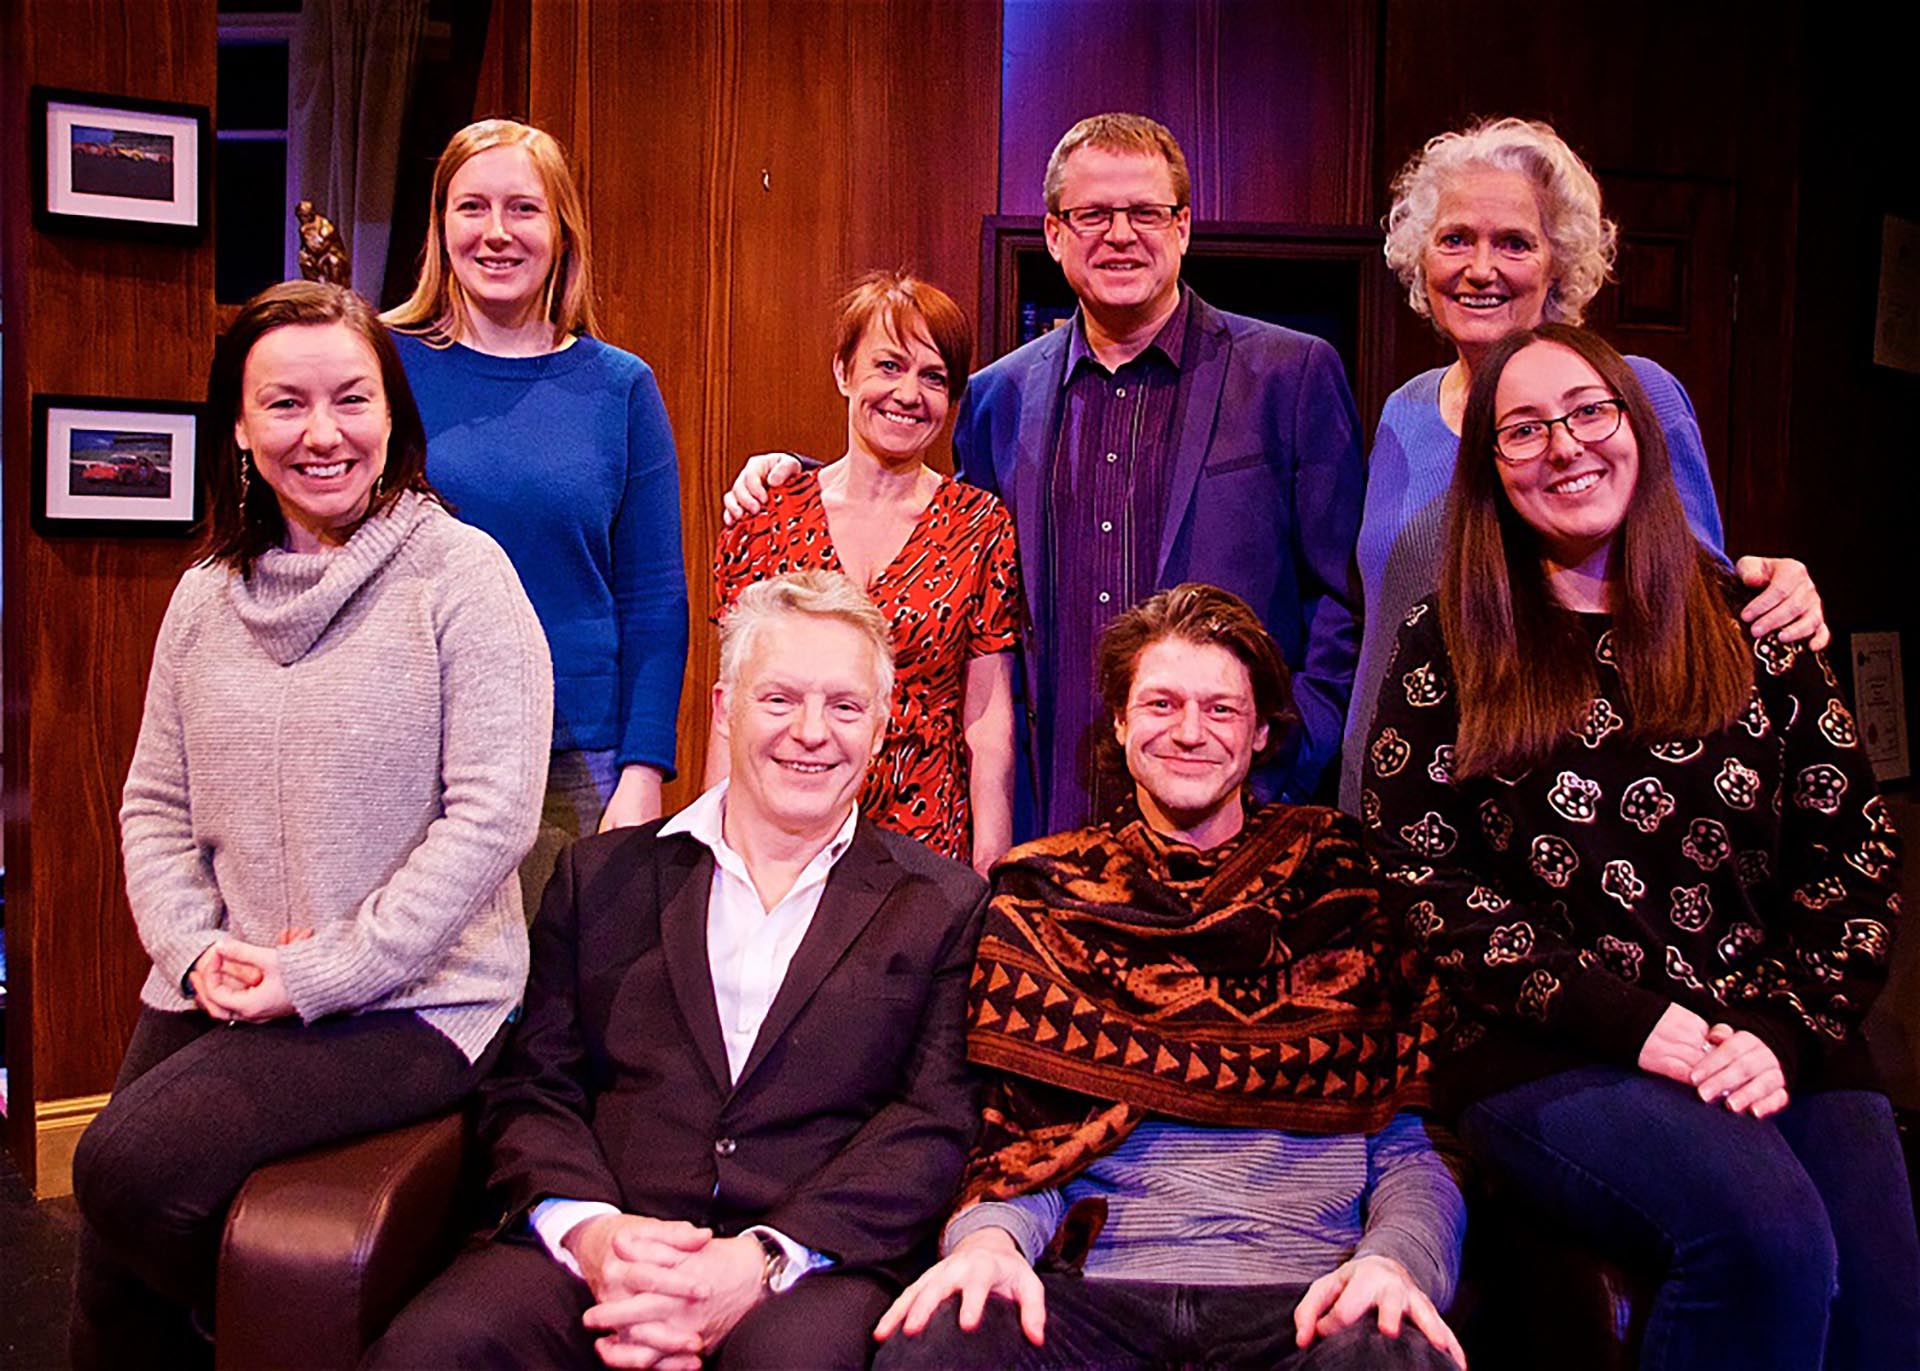 Revenge - the company - Sarah Gain (Understudy), Claire Childs (Lighting Designer), Nigel Fairs, Kate Ashmead, Martin Parsons (Producer), Toby Trimby (playing Mark Tilling), Louise Jameson (Director) & Alexandra Bradford (Stage Manager)